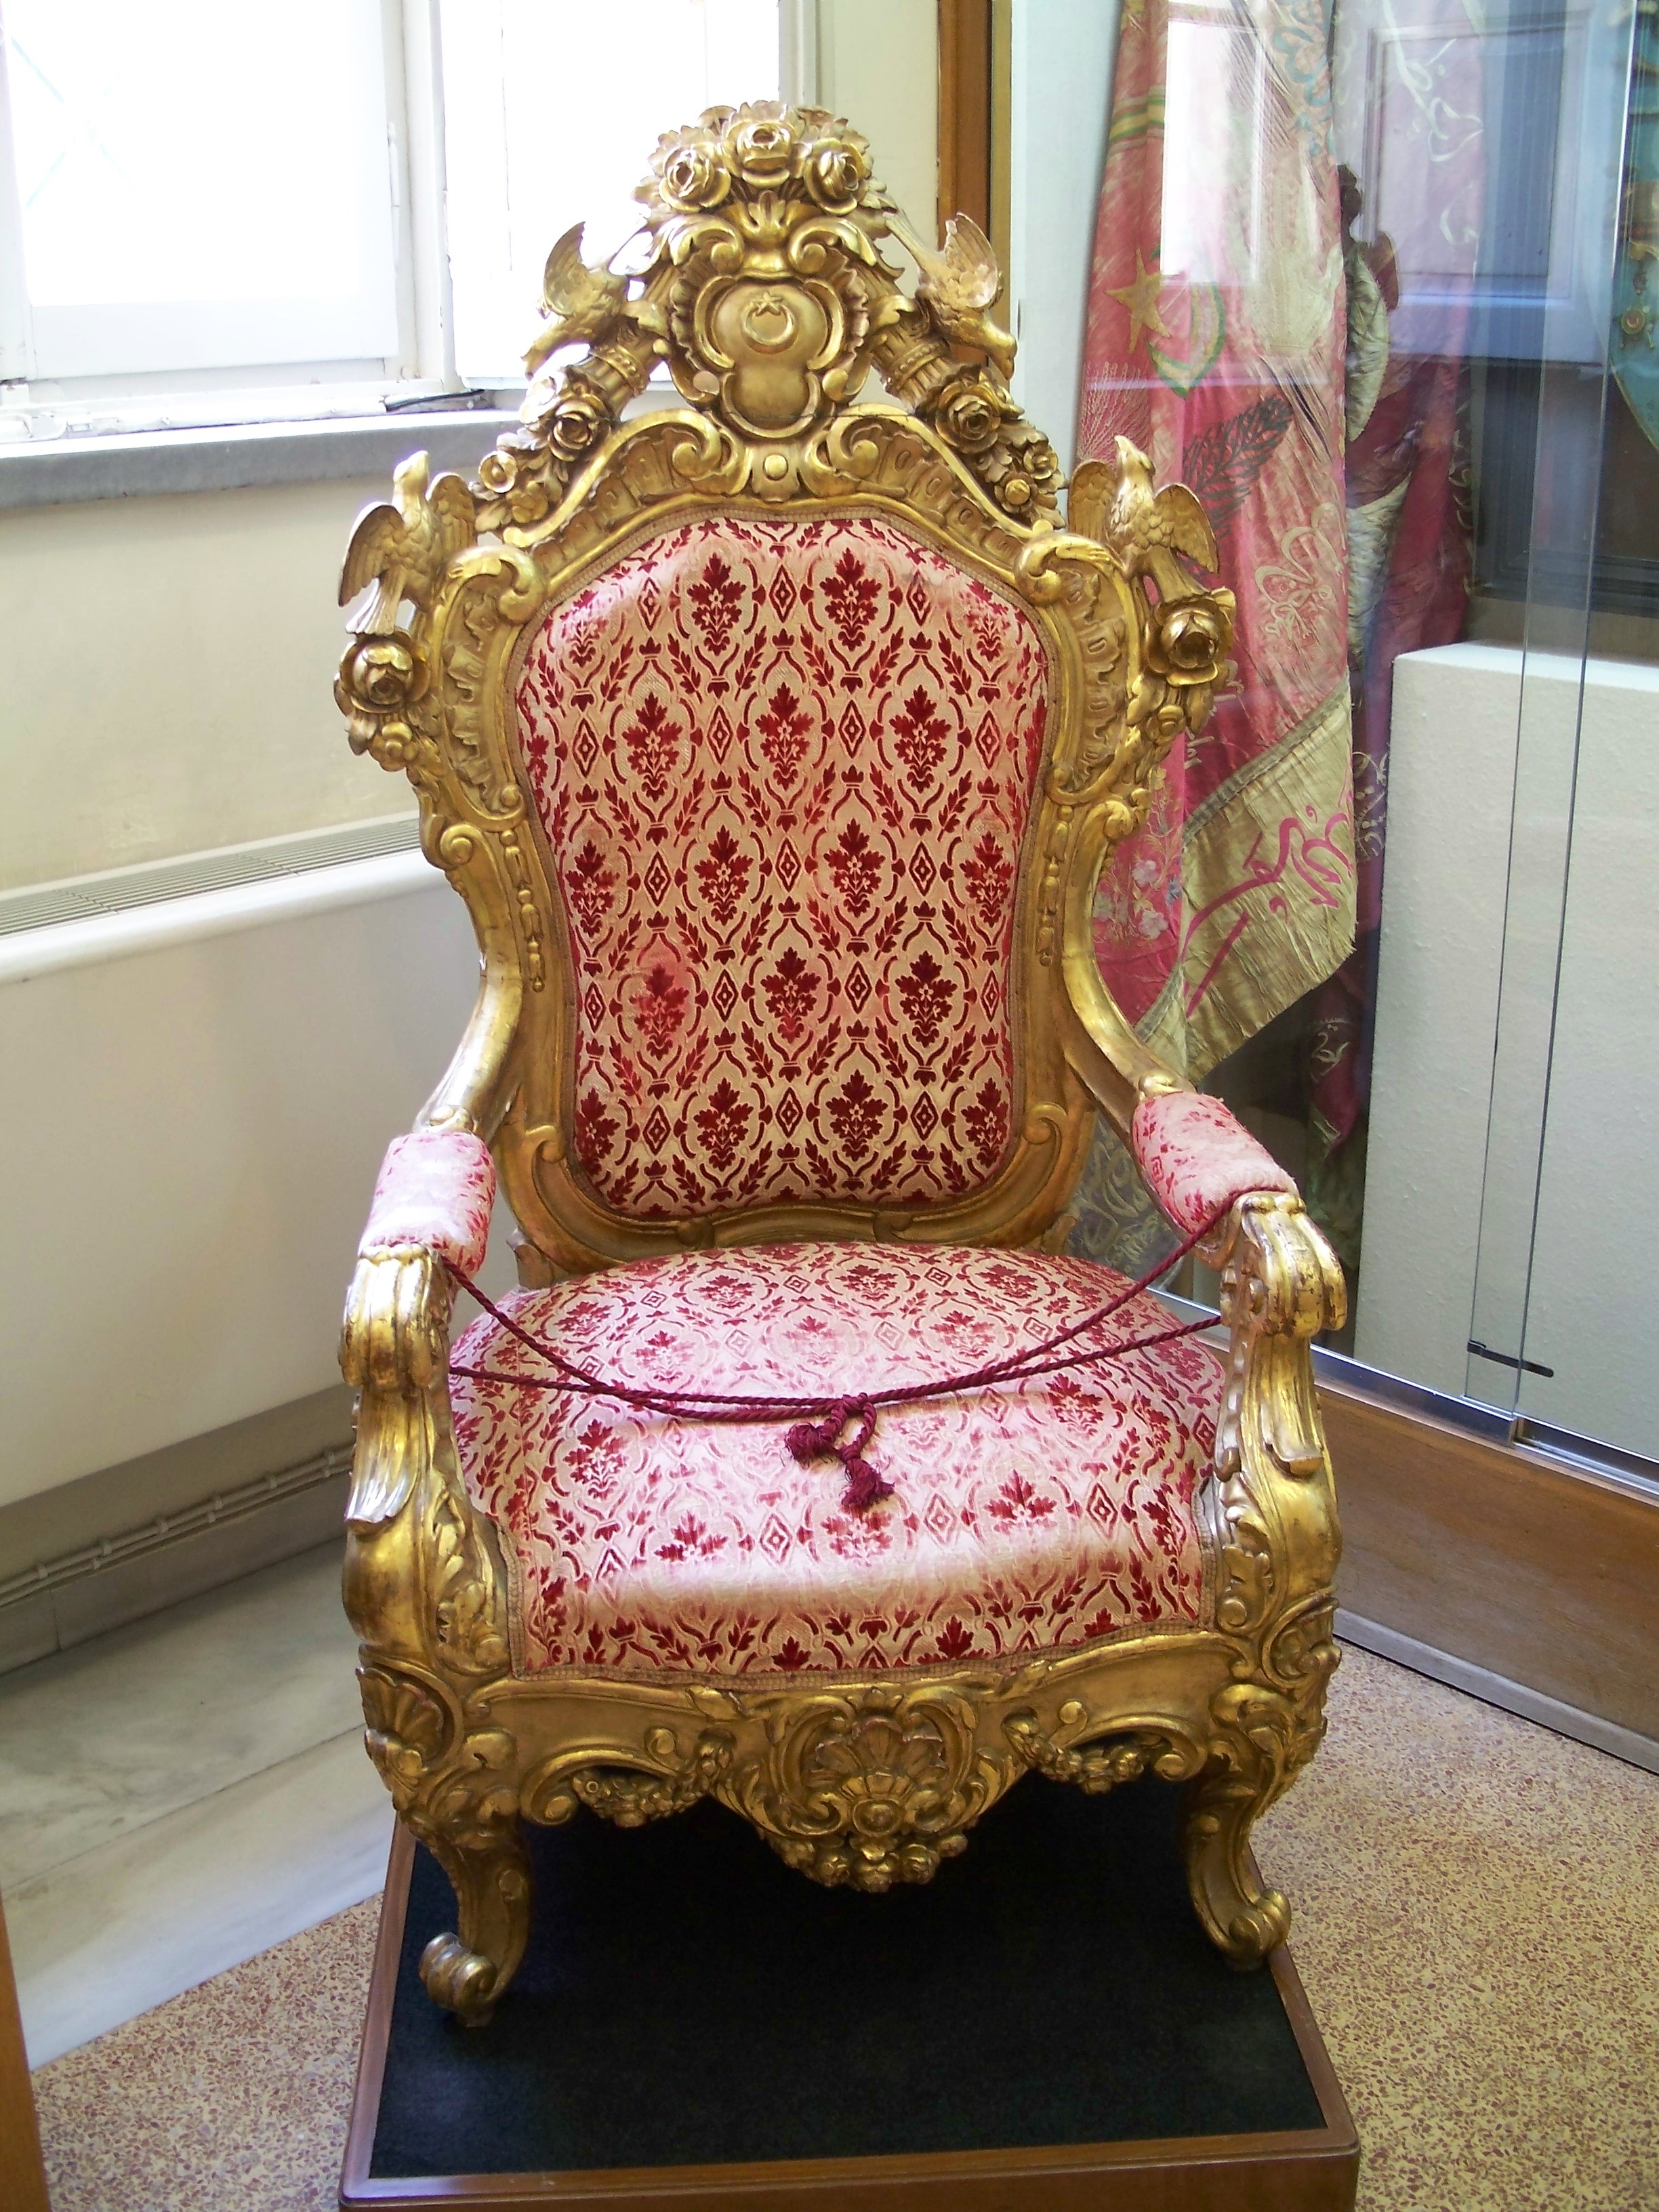 Throne - 06 photo